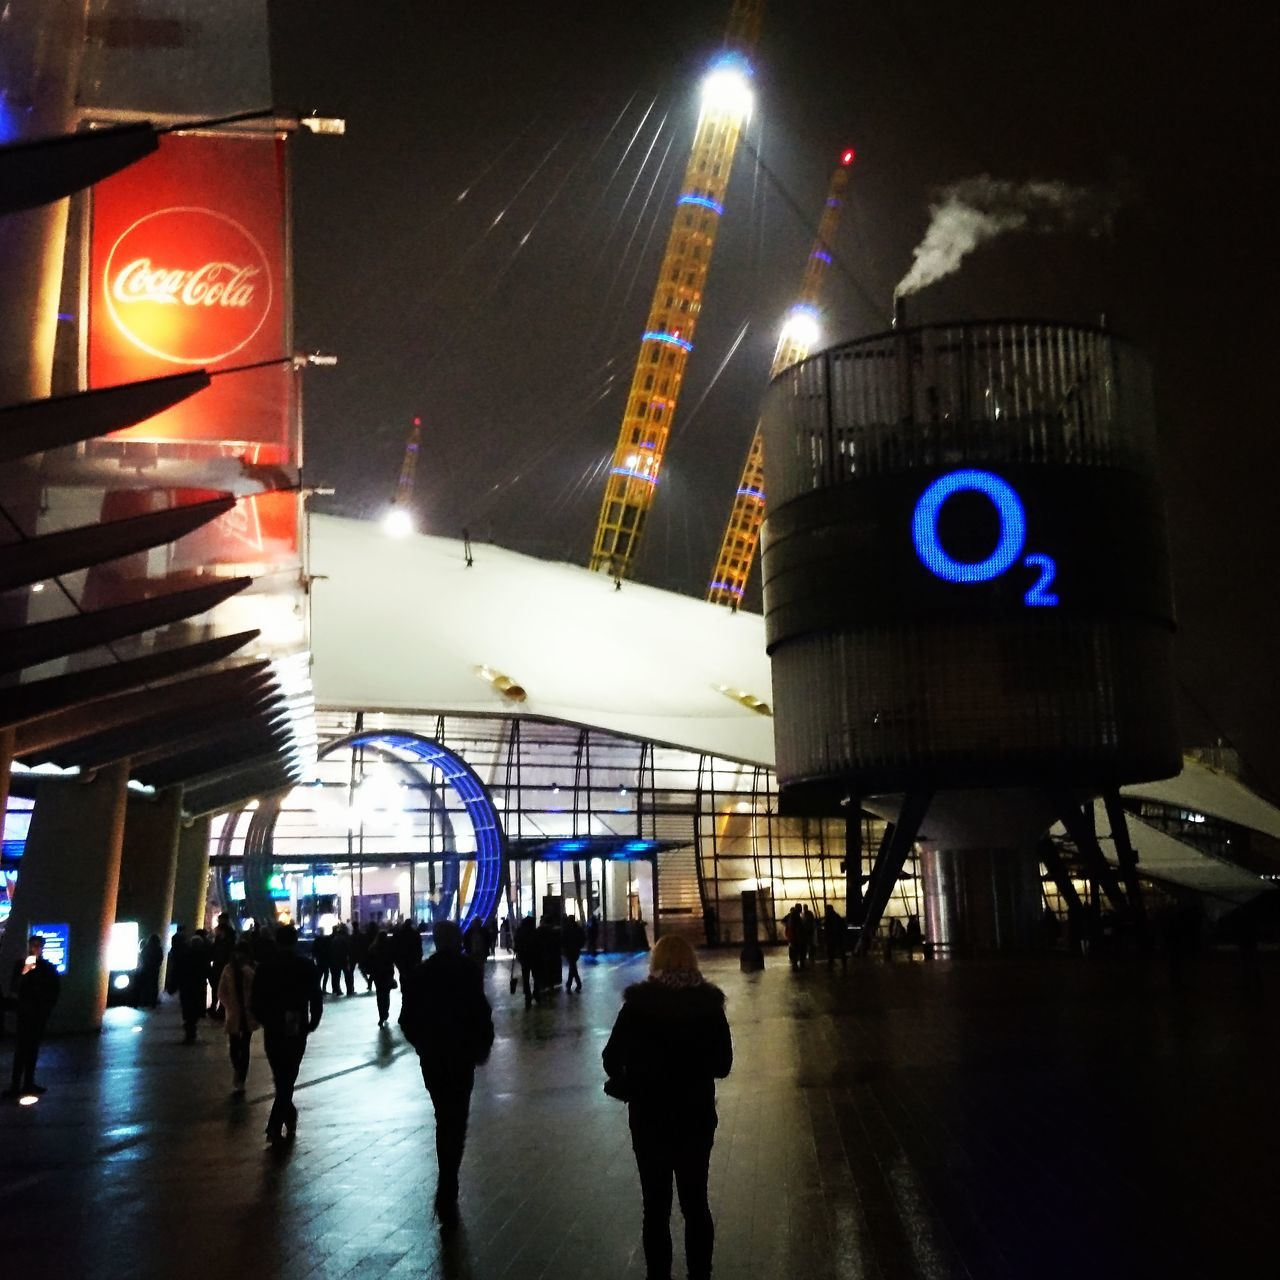 Large Group Of People Outdoors People Crowd Built Structure Architecture Illuminated Night O2 Arena Gig Venue BiffyClyro London Greenwich Band Nightlife Nightphotography